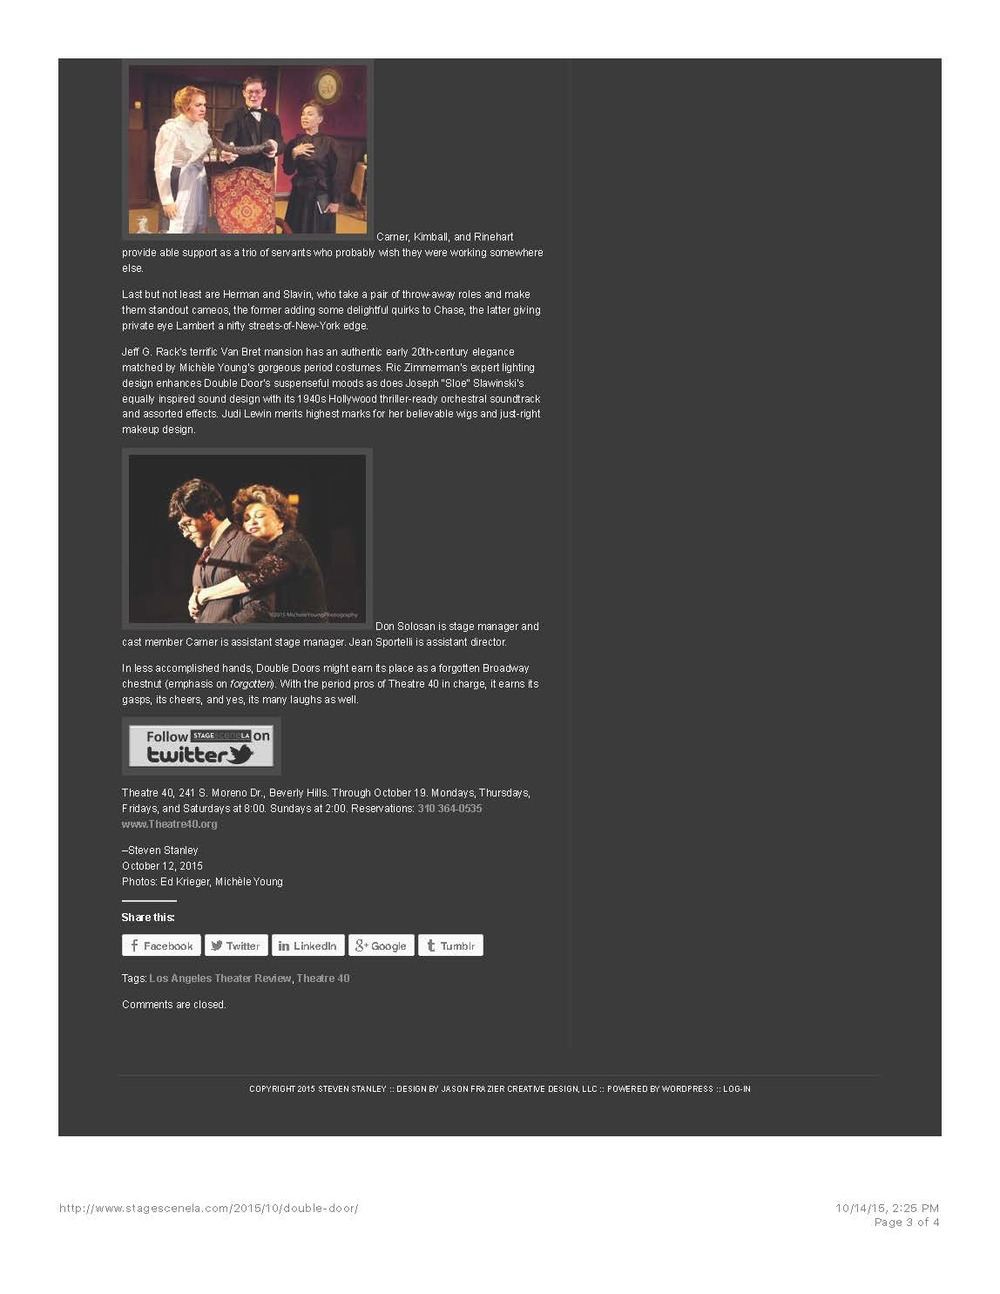 StageSceneLA Press_Page_3.jpg